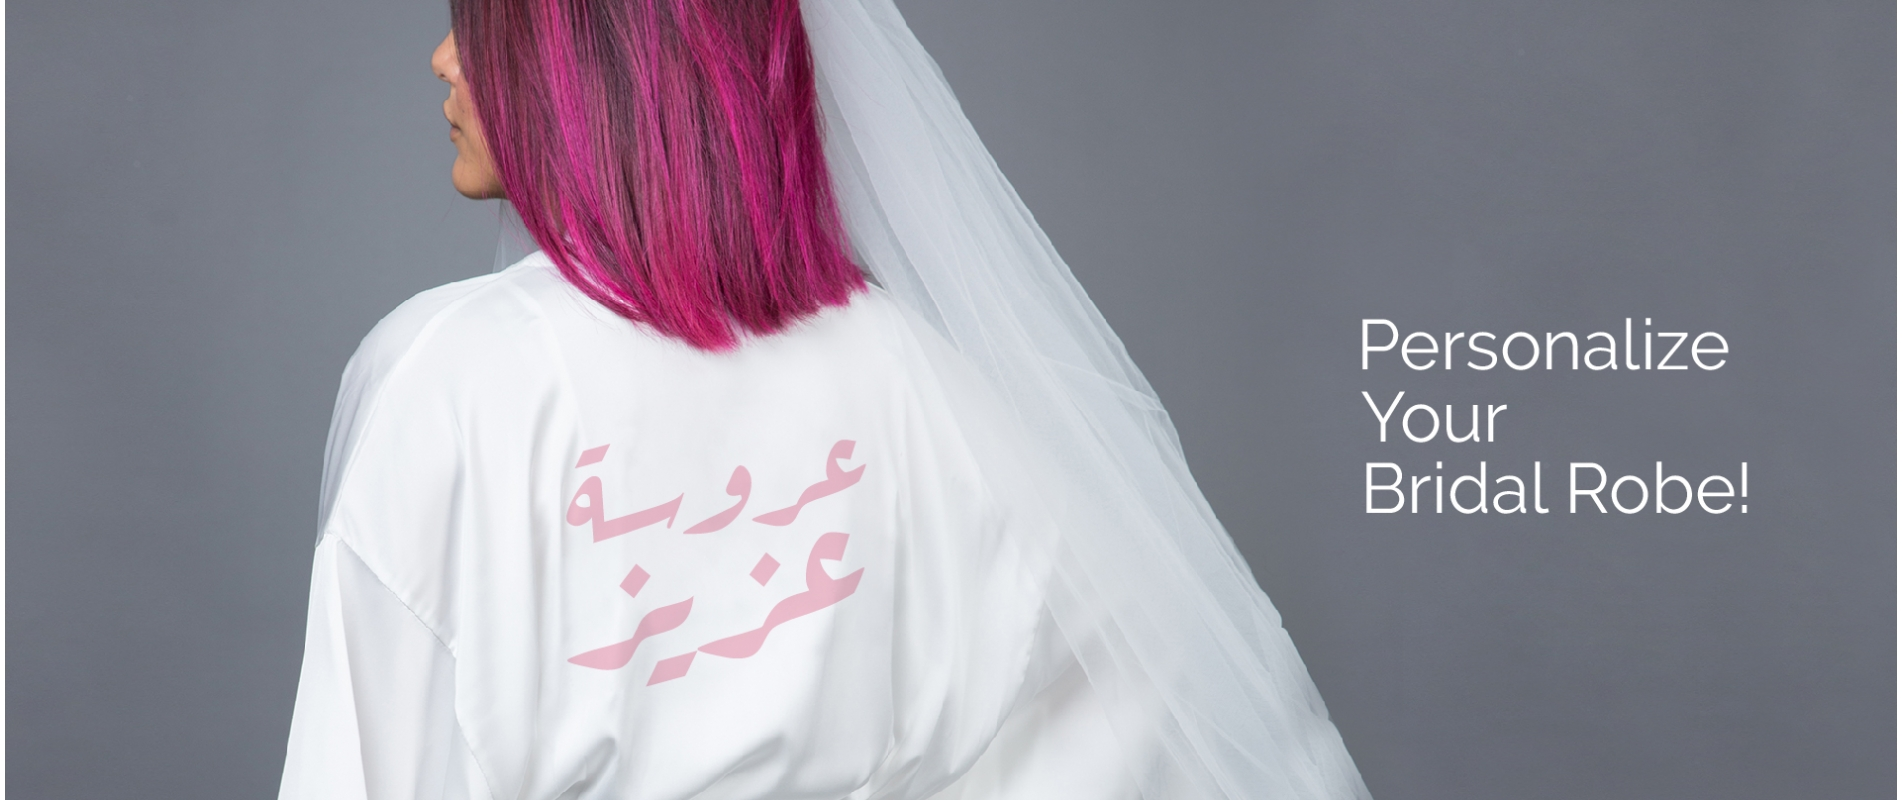 Personalize your bridal robe